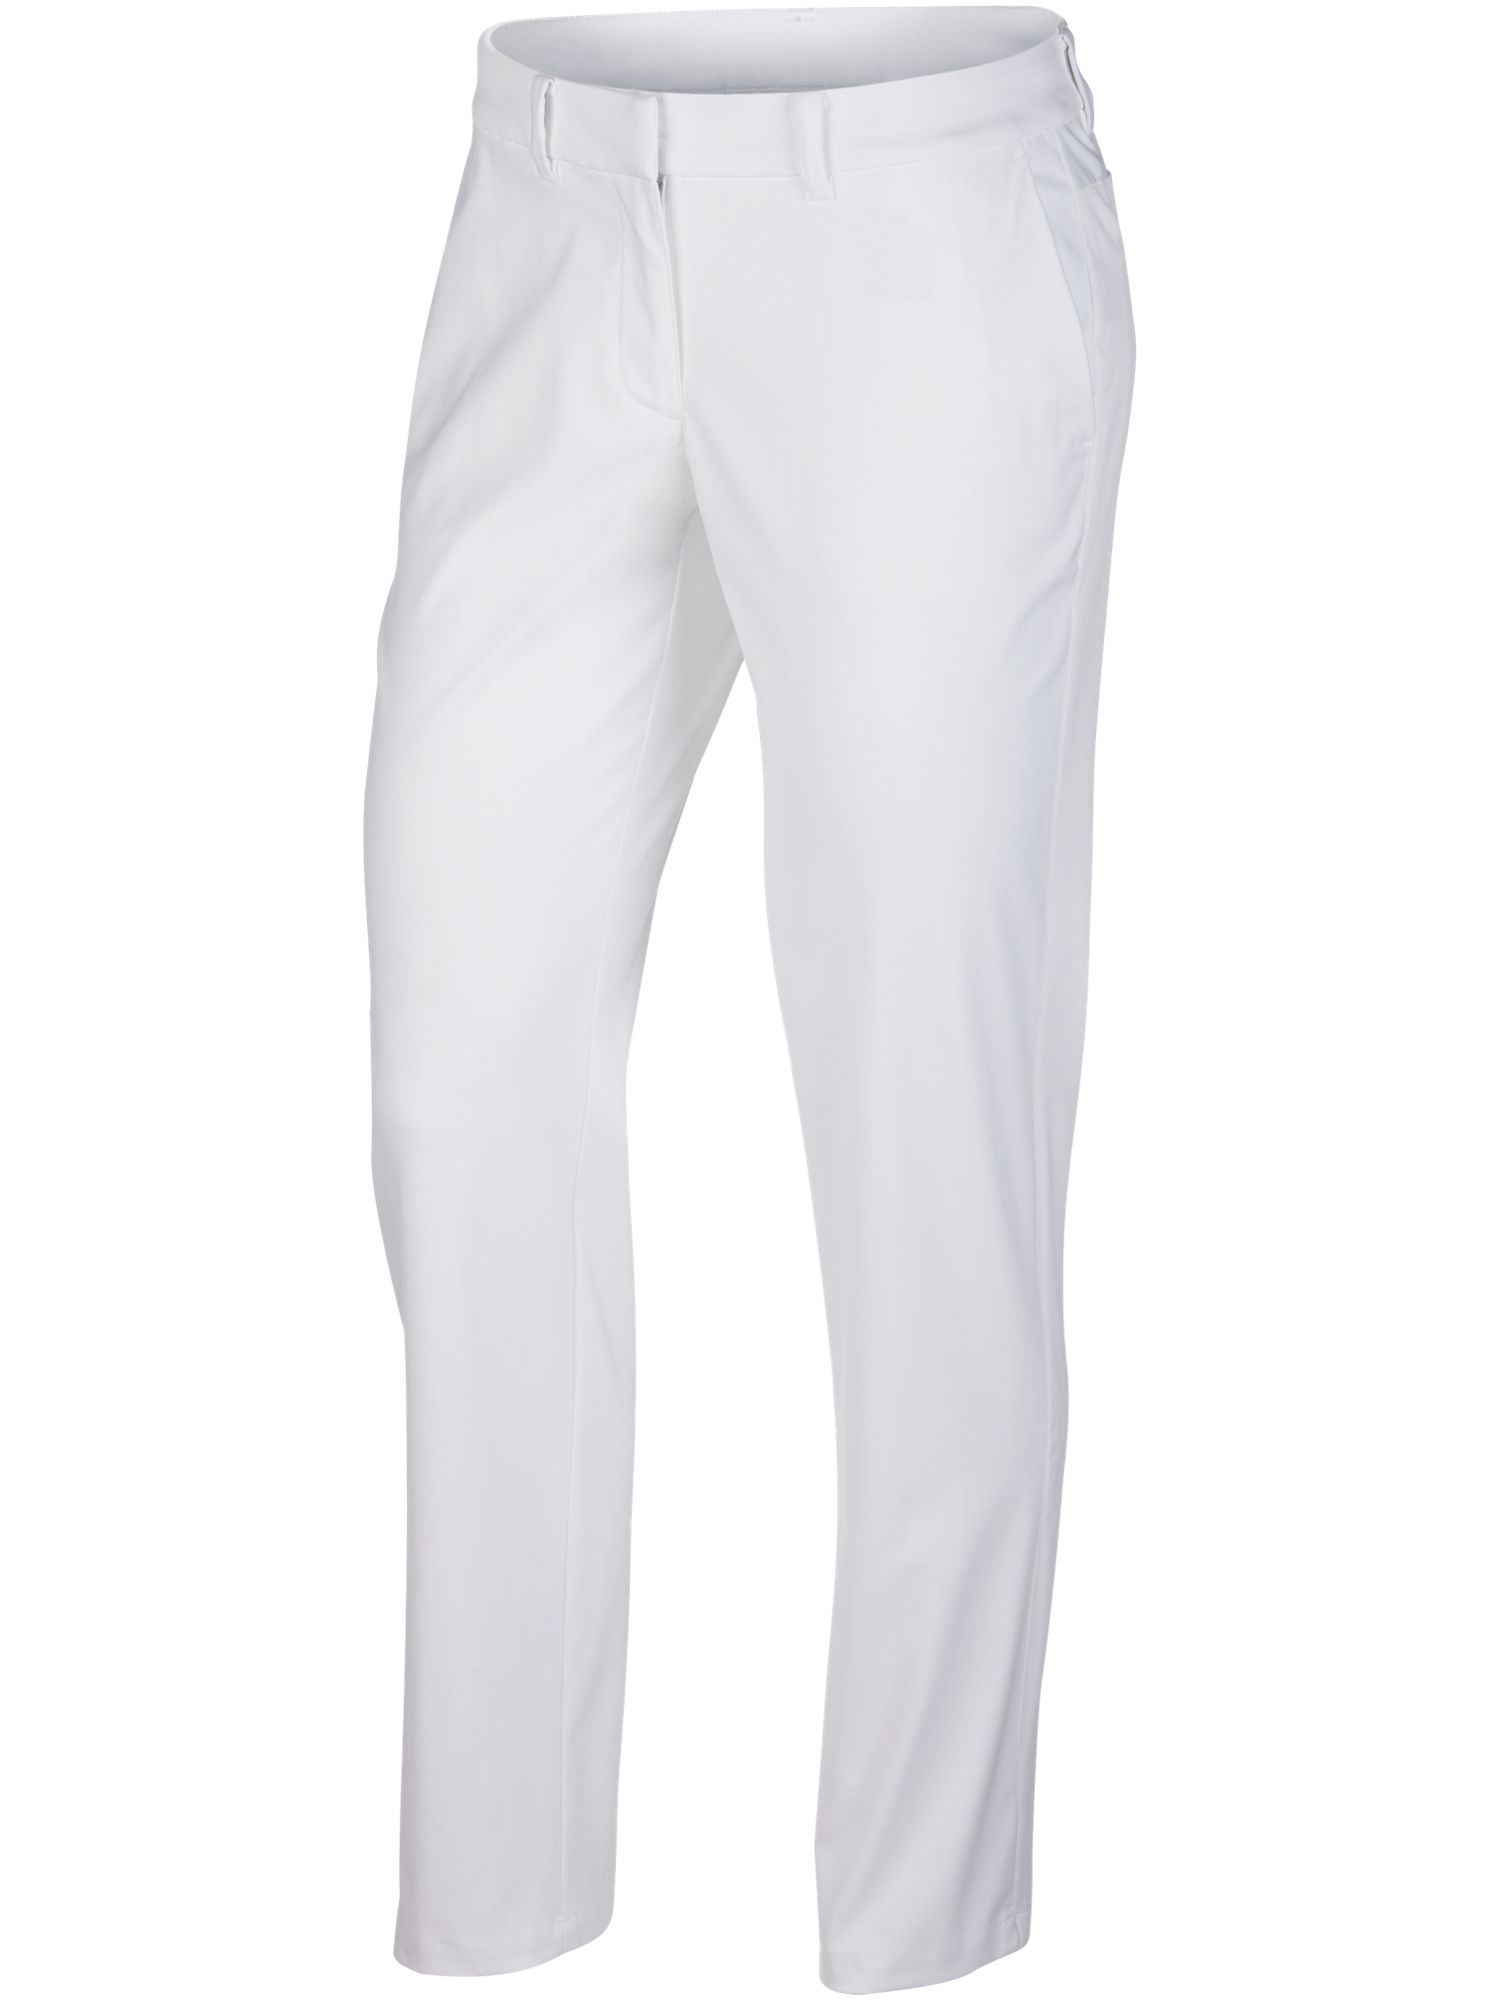 Nike Golf Flex Woven Trouser, White